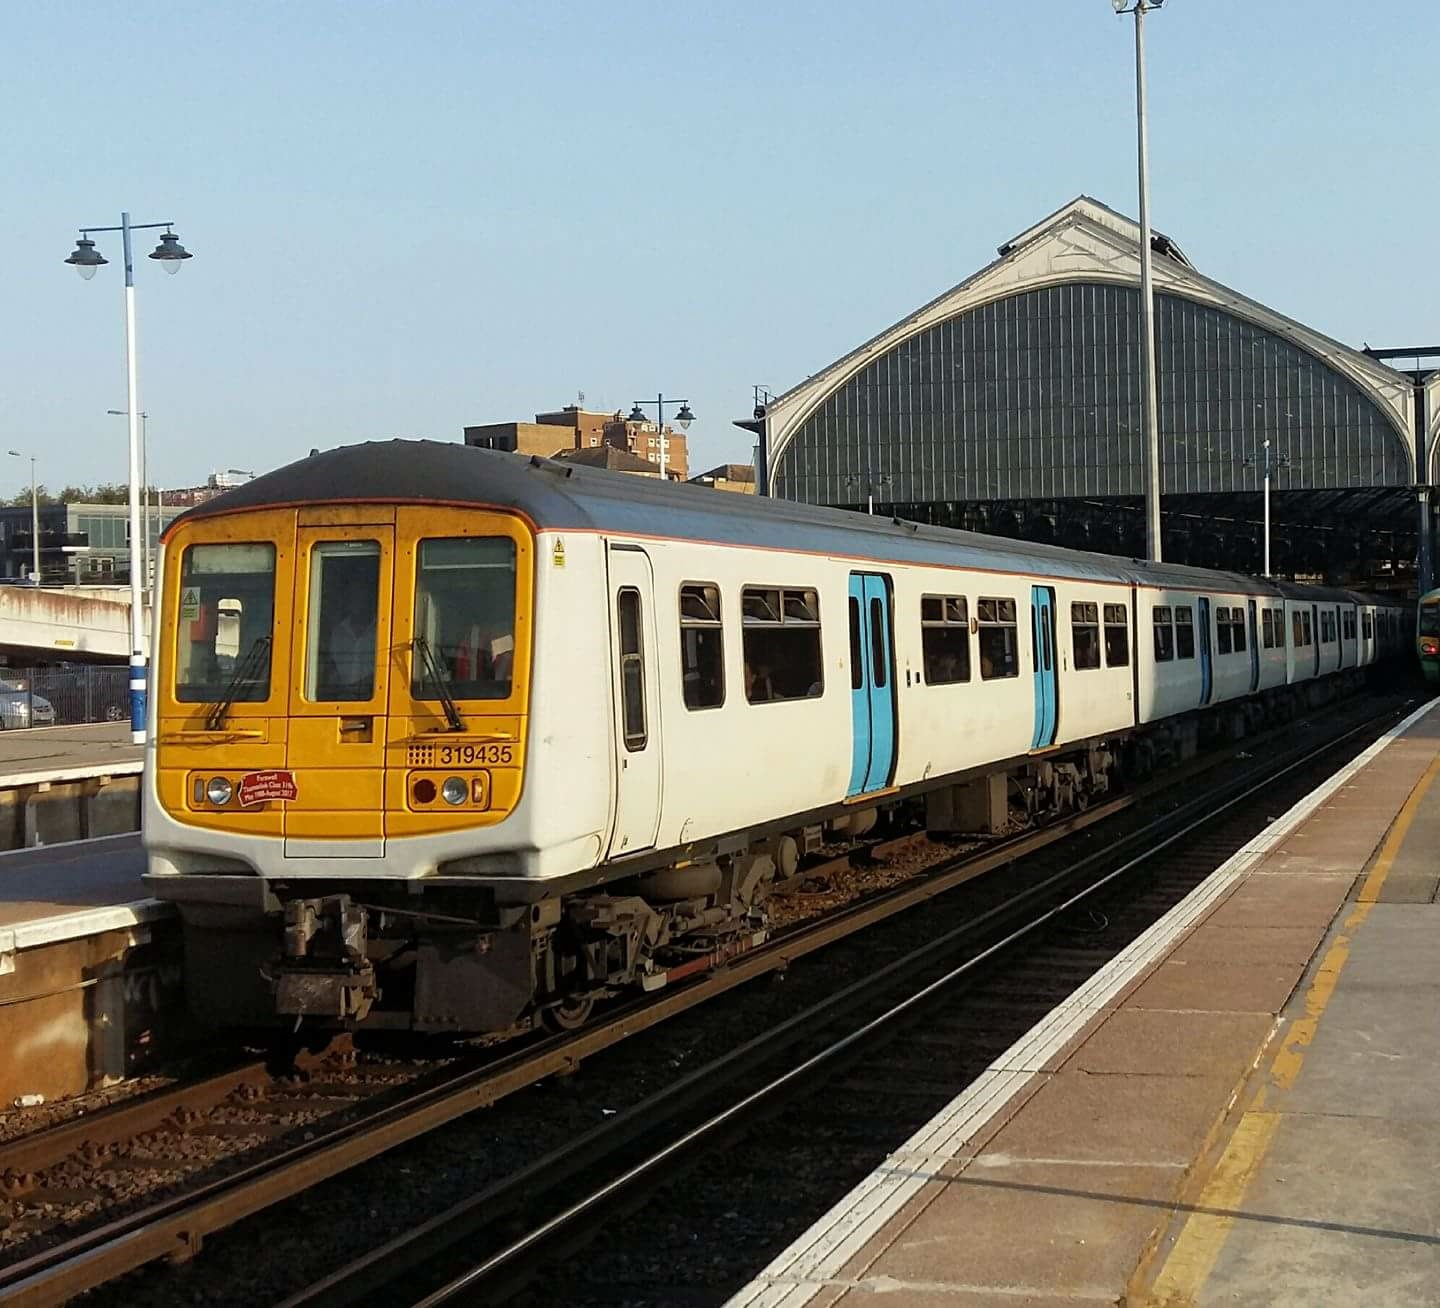 Thameslink replaces last of 30-year-old Class 319 fleet